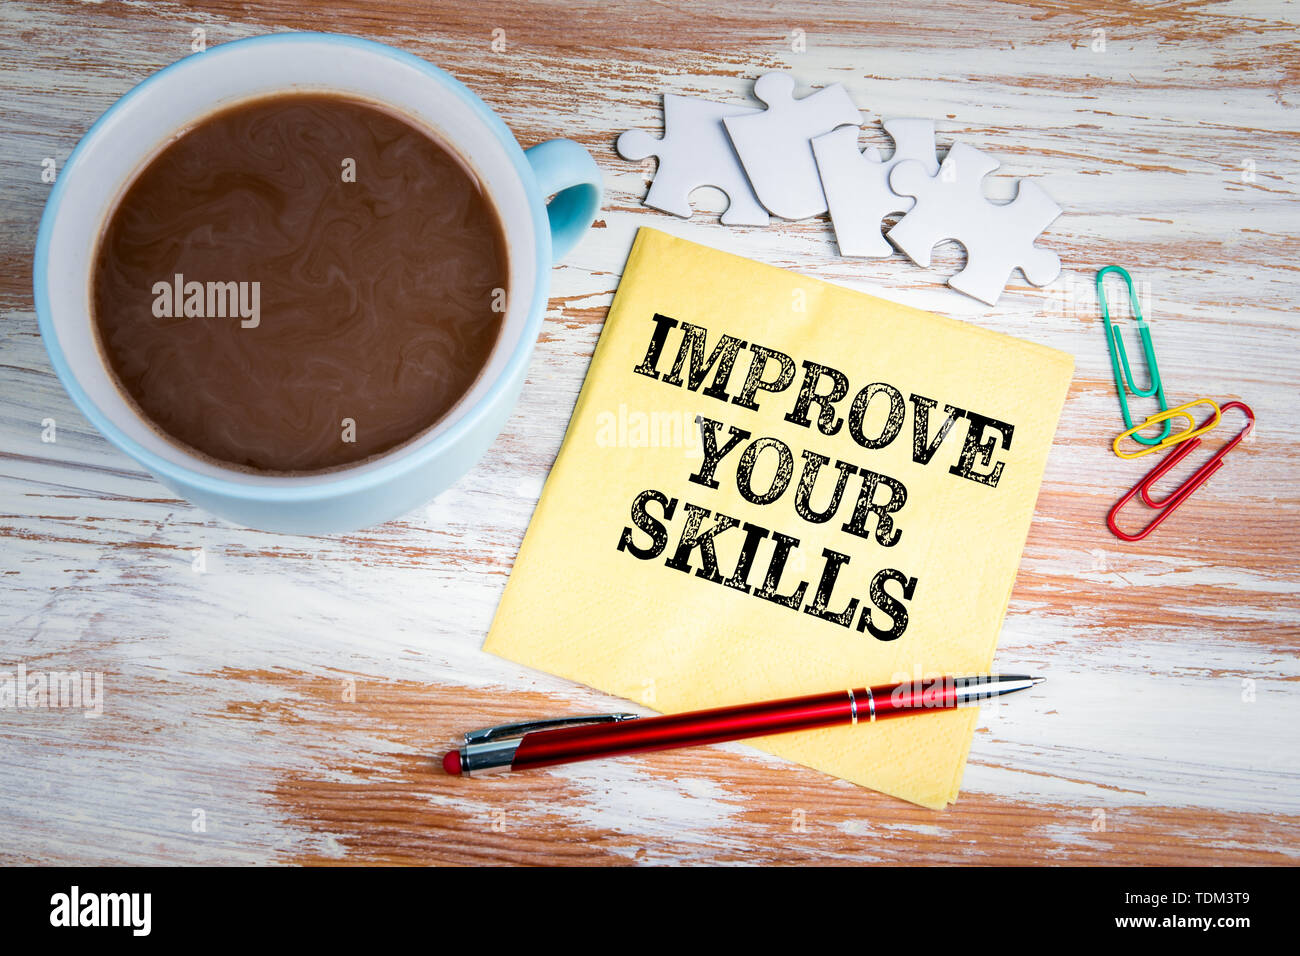 IMPROVE YOUR SKILLS concept. Text on a napkin - Stock Image